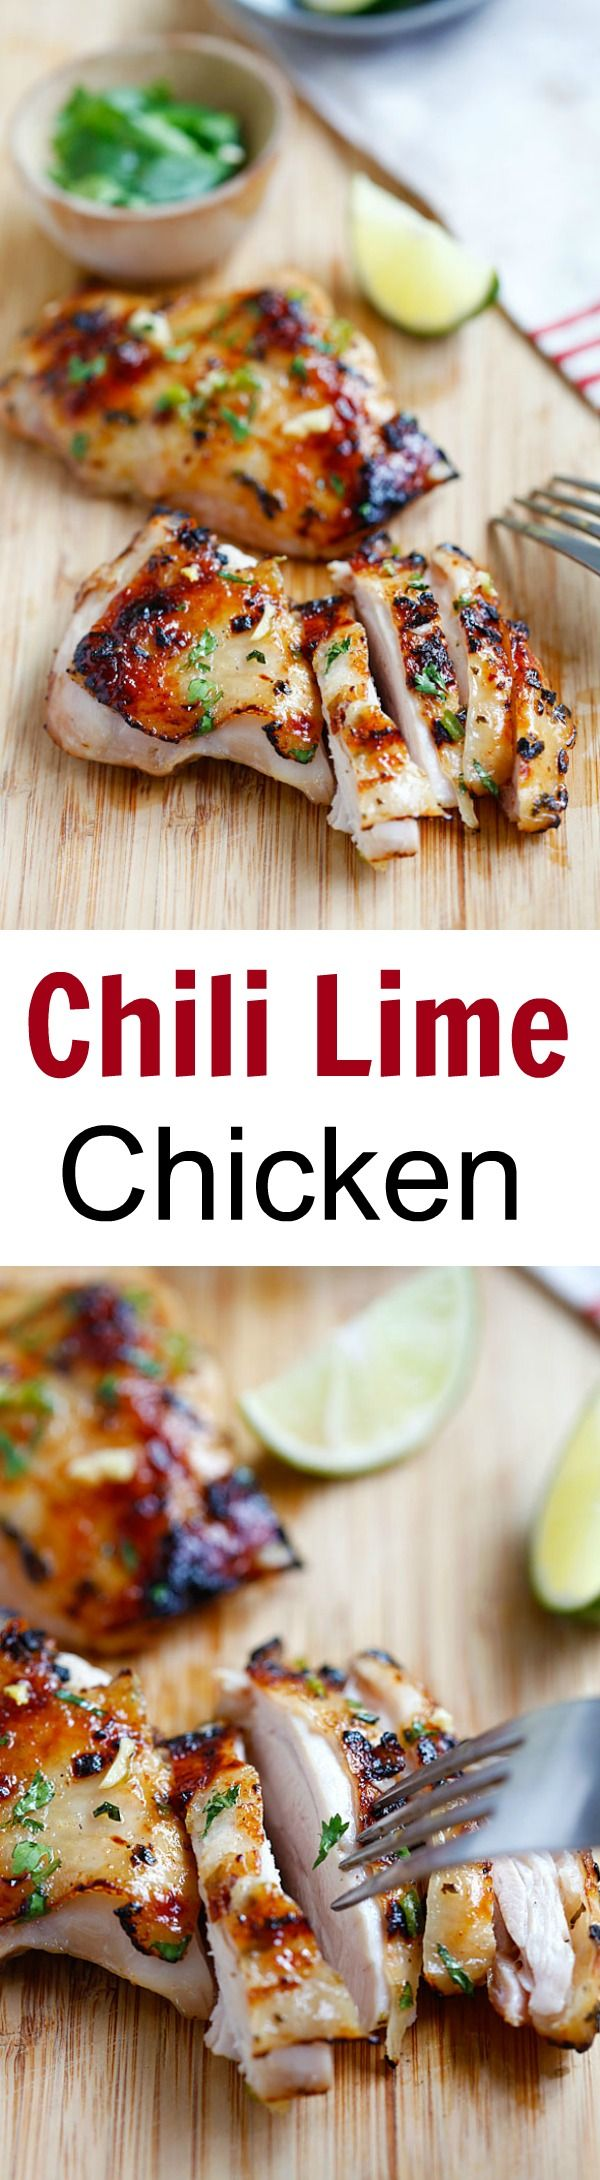 Chili lime chicken  C moist and delicious chicken marinated with chili and lime and grill to perfection  Easy recipe that takes 30 mins   rasamalaysia com